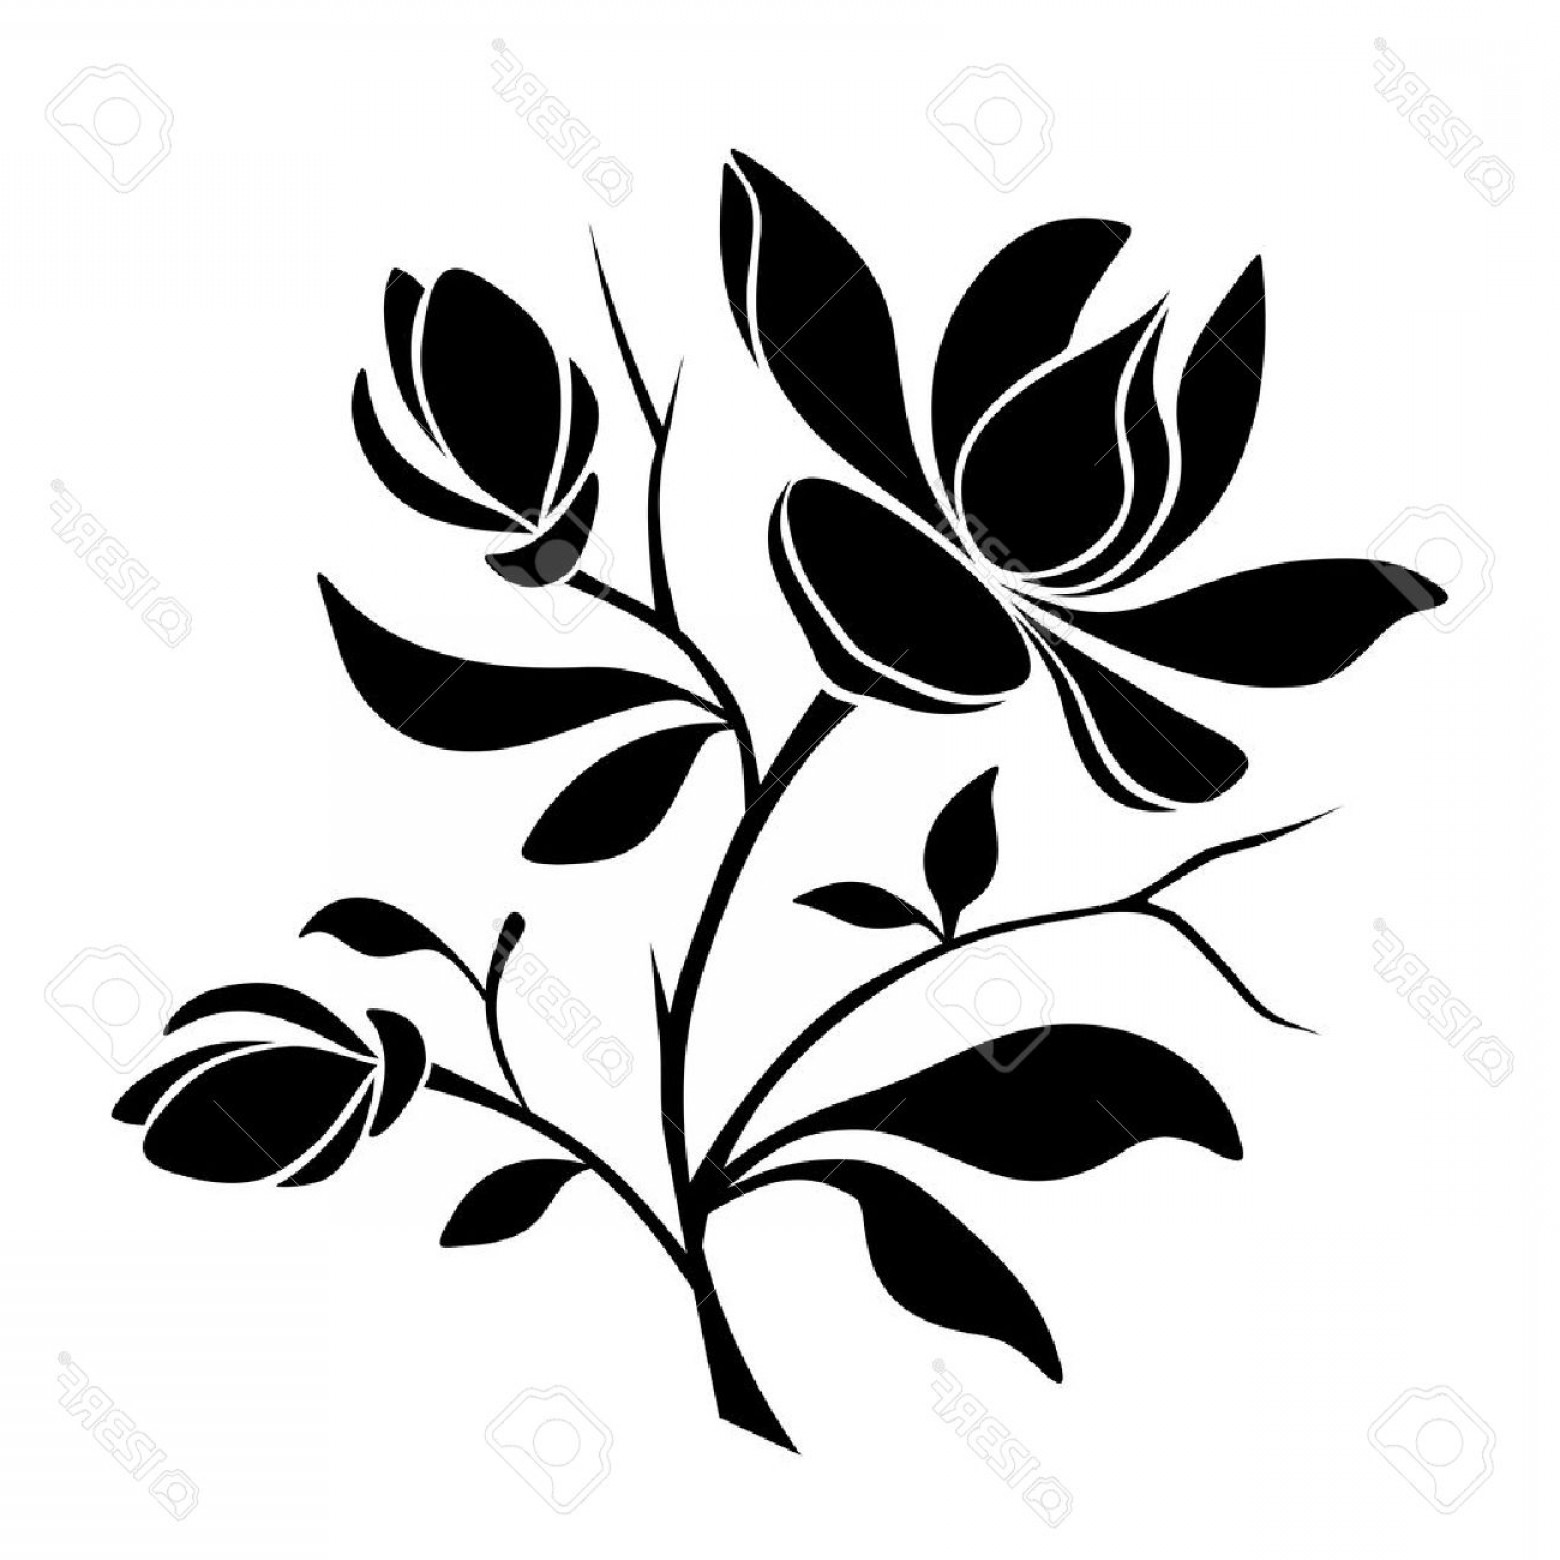 Magnolia Black And White Vector: Photostock Vector Vector Black Silhouette Of Magnolia Flowers On A White Background